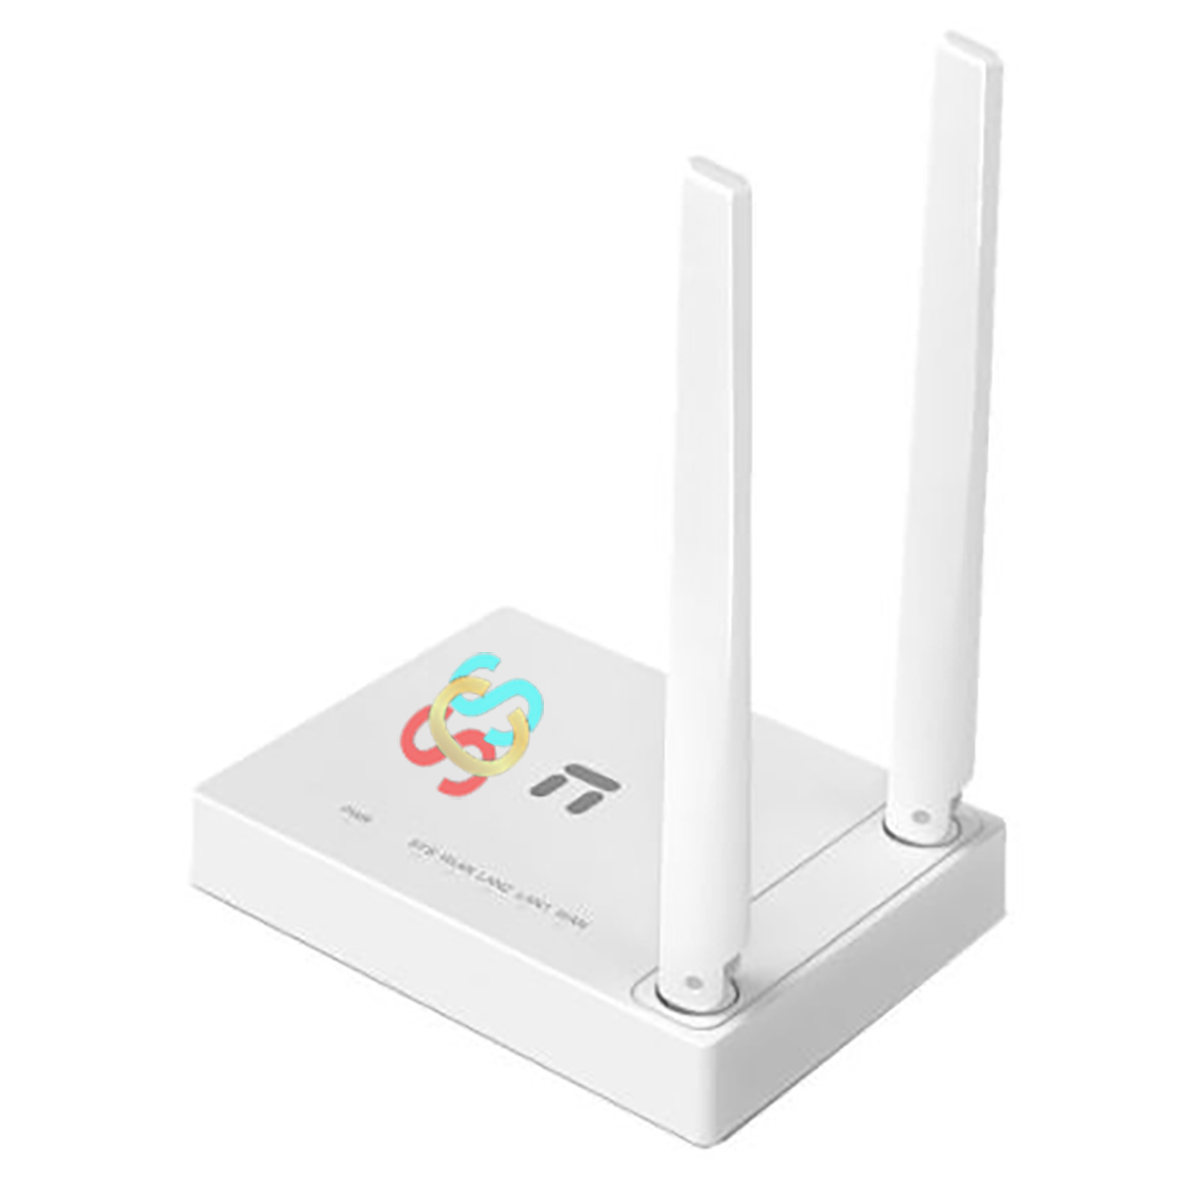 Netis W1 300 Mbps Ethernet Single-Band Wi-Fi Router